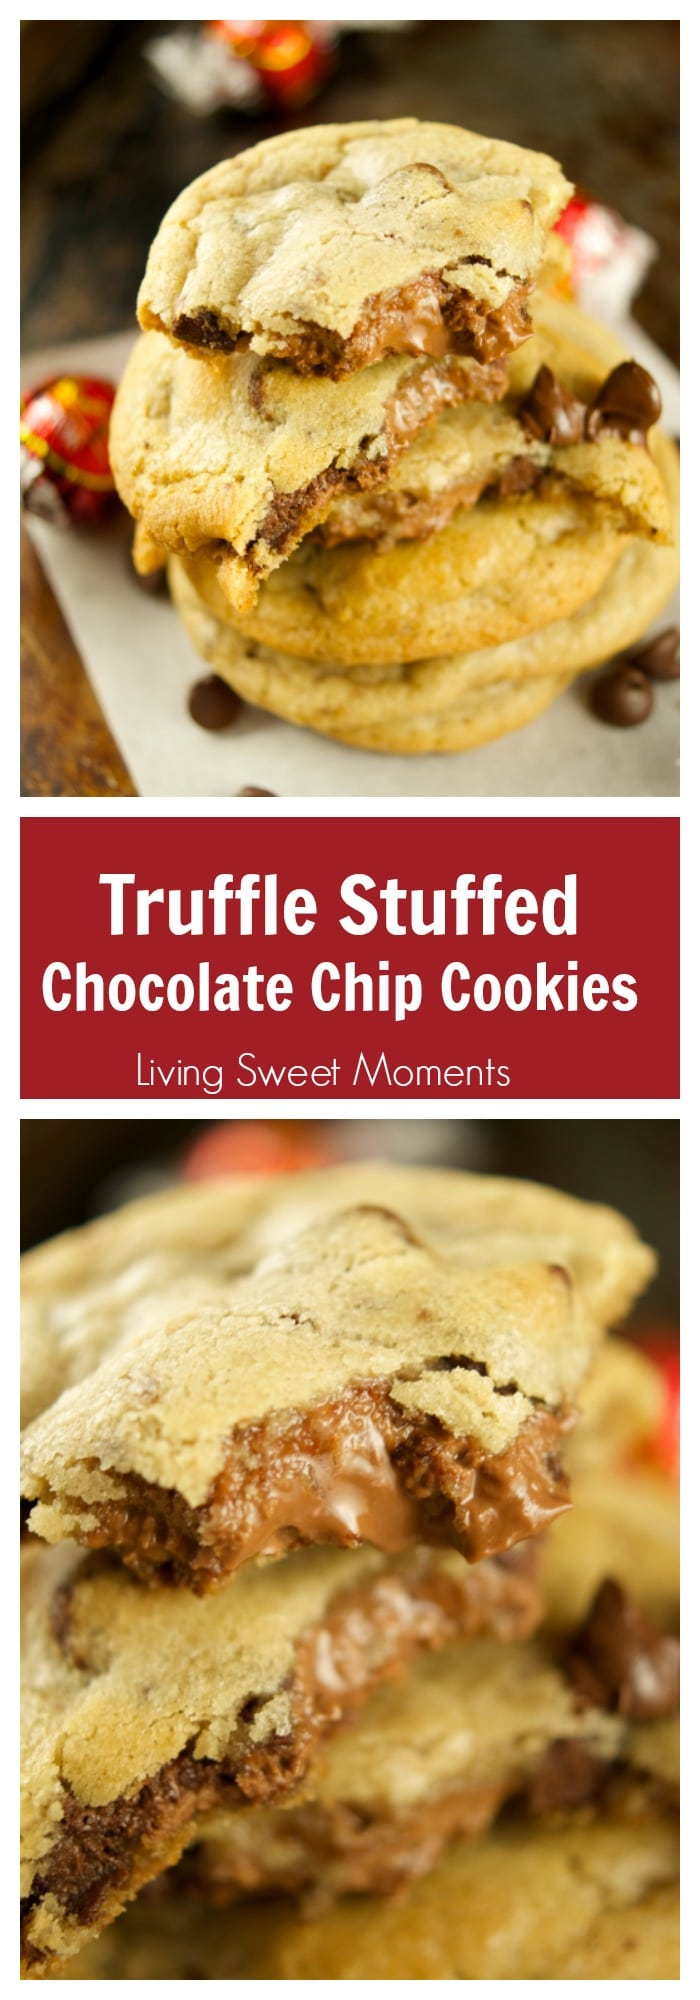 Truffle Stuffed Chocolate Chip Cookies – these chewy chocolate chip cookies are ooey gooey and stuffed with a chocolate truffle. The best cookie recipe! Yum